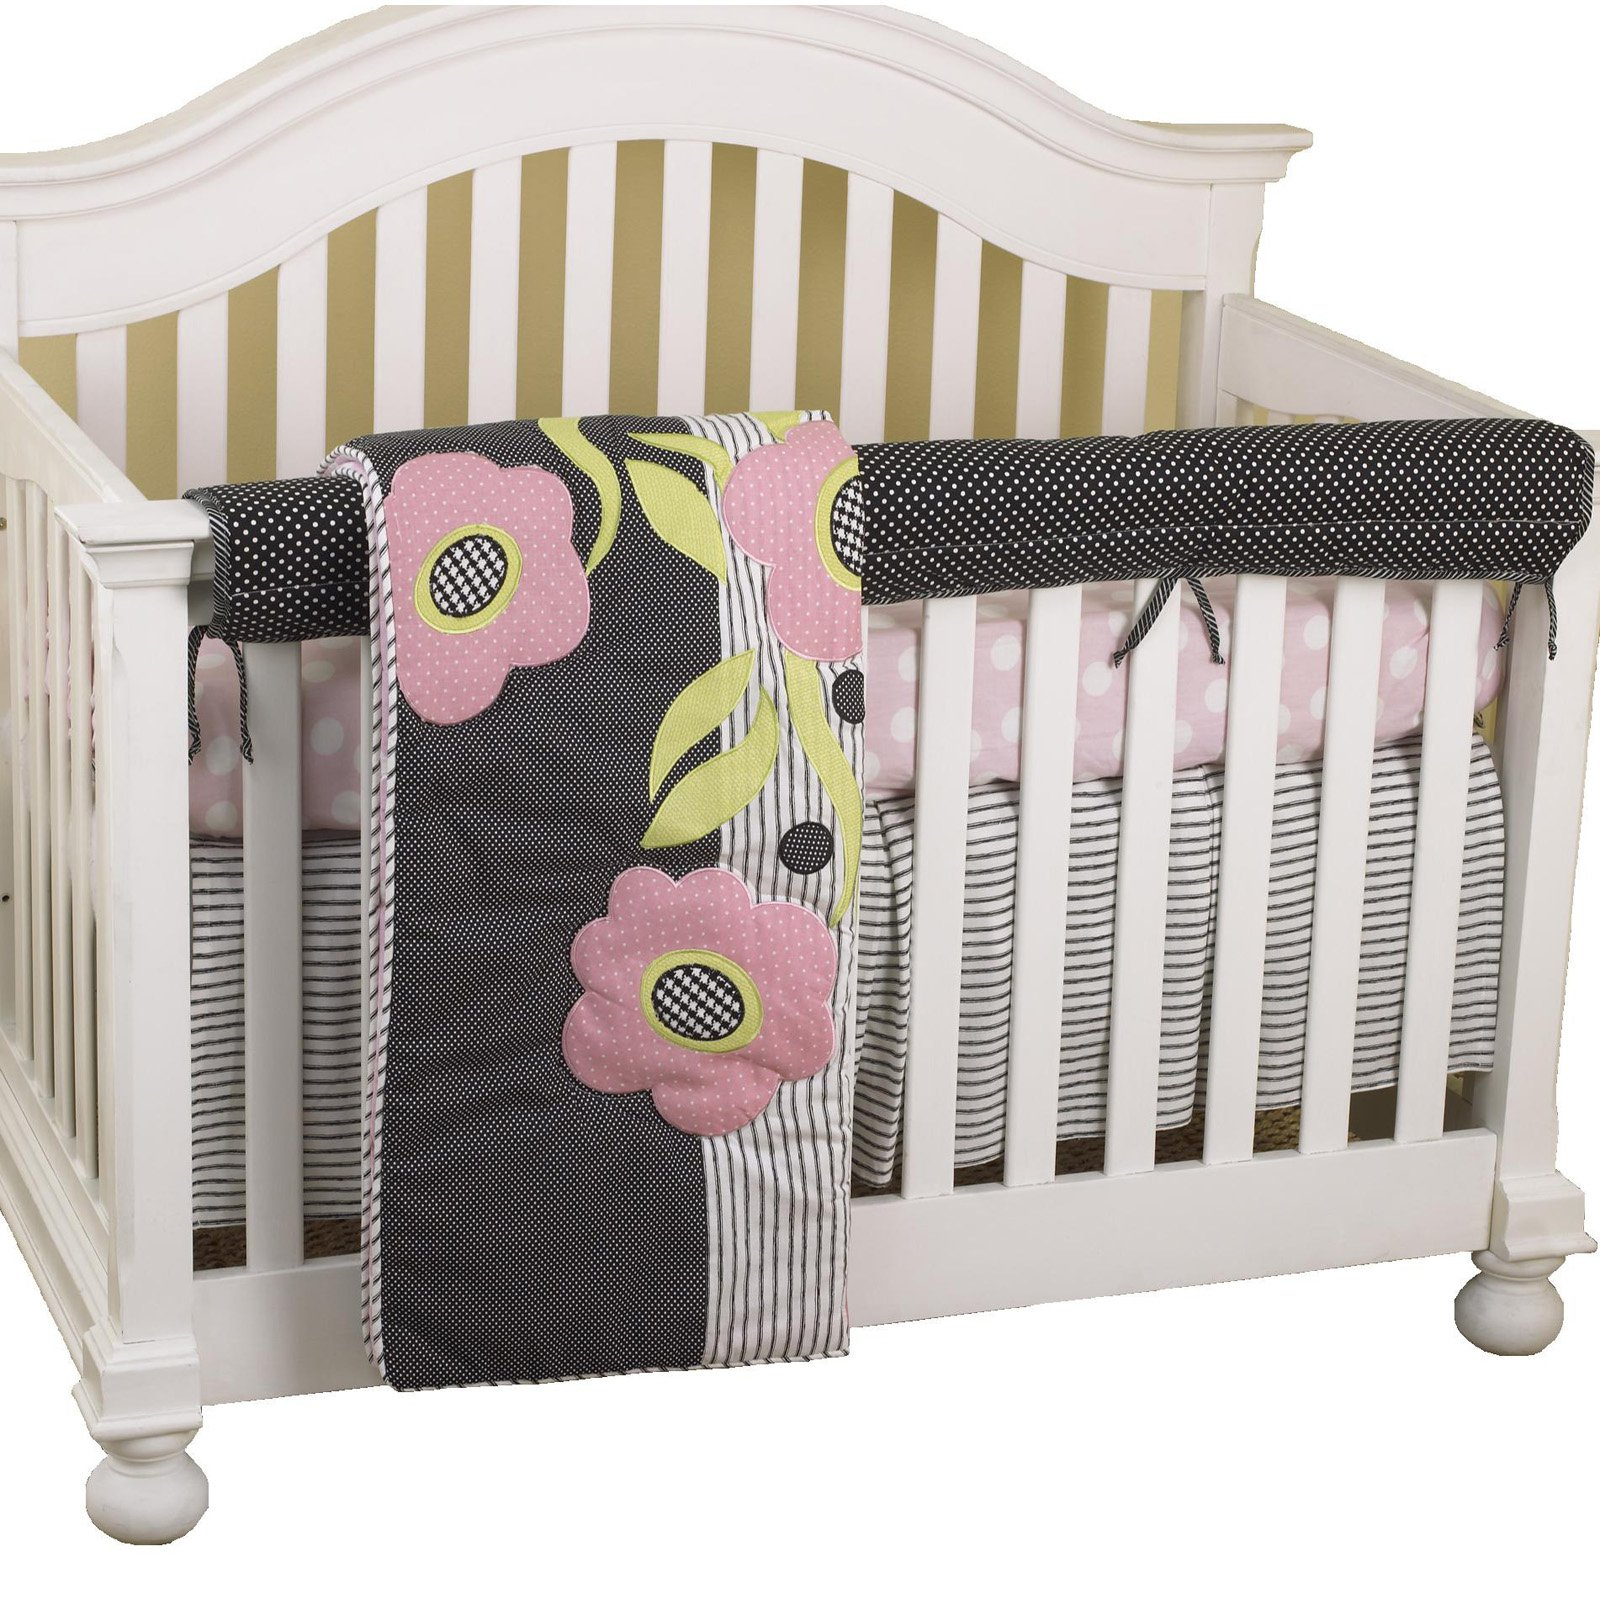 Cotton Tale Designs Poppy Front Crib Rail Cover Up Set